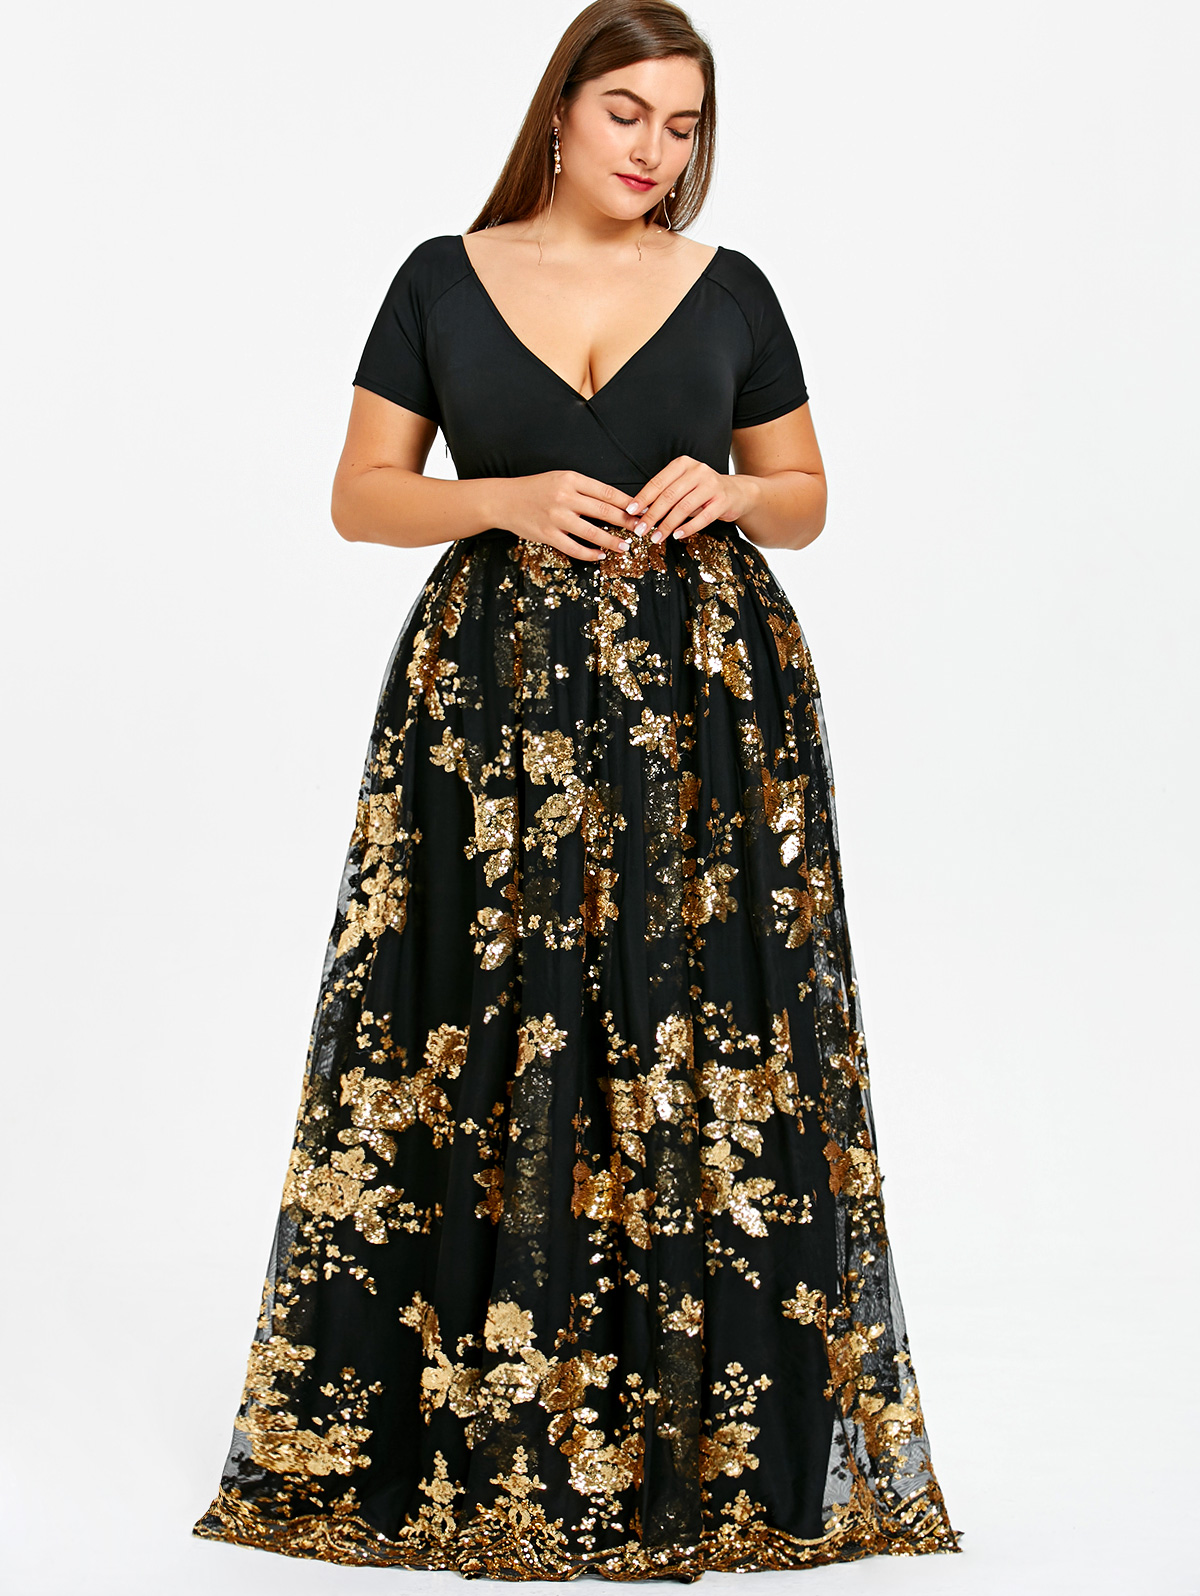 e0f4eed33337 Gamiss Plus Size Dress Women Sexy Deep V Neck Short Sleeves Floral Sparkly Maxi  Dresses Elegant